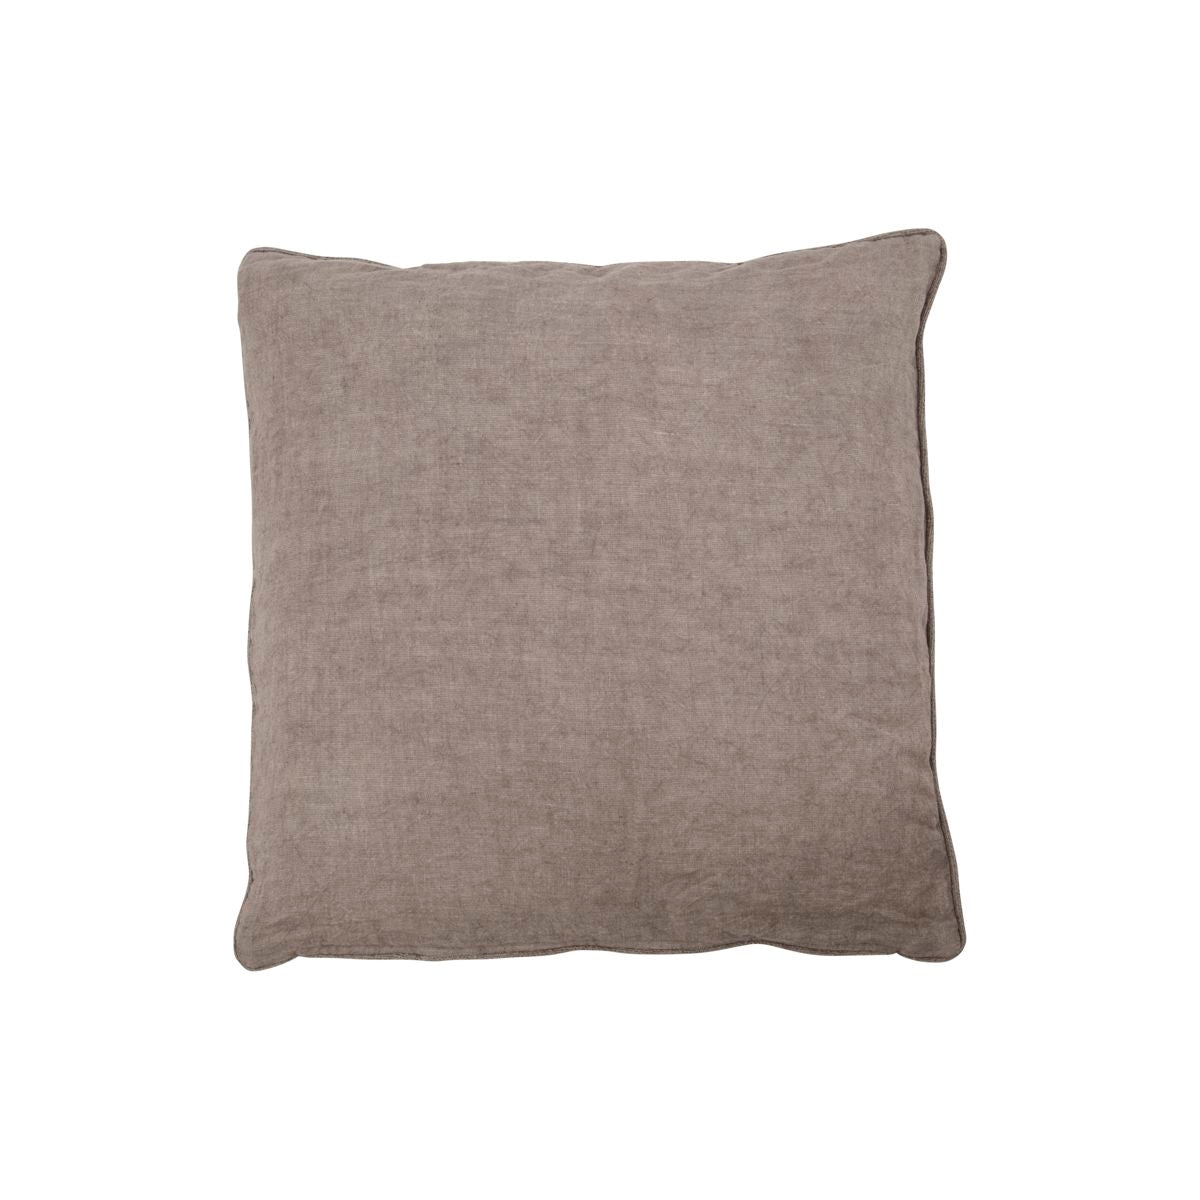 House Doctor Cushion cover, Sai, Warm grey